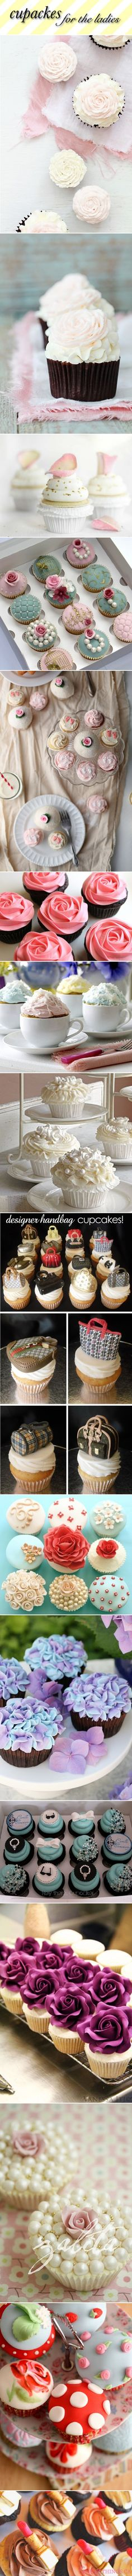 Darling Cupcakes- Kristi check out these cupcakes!!!! :)